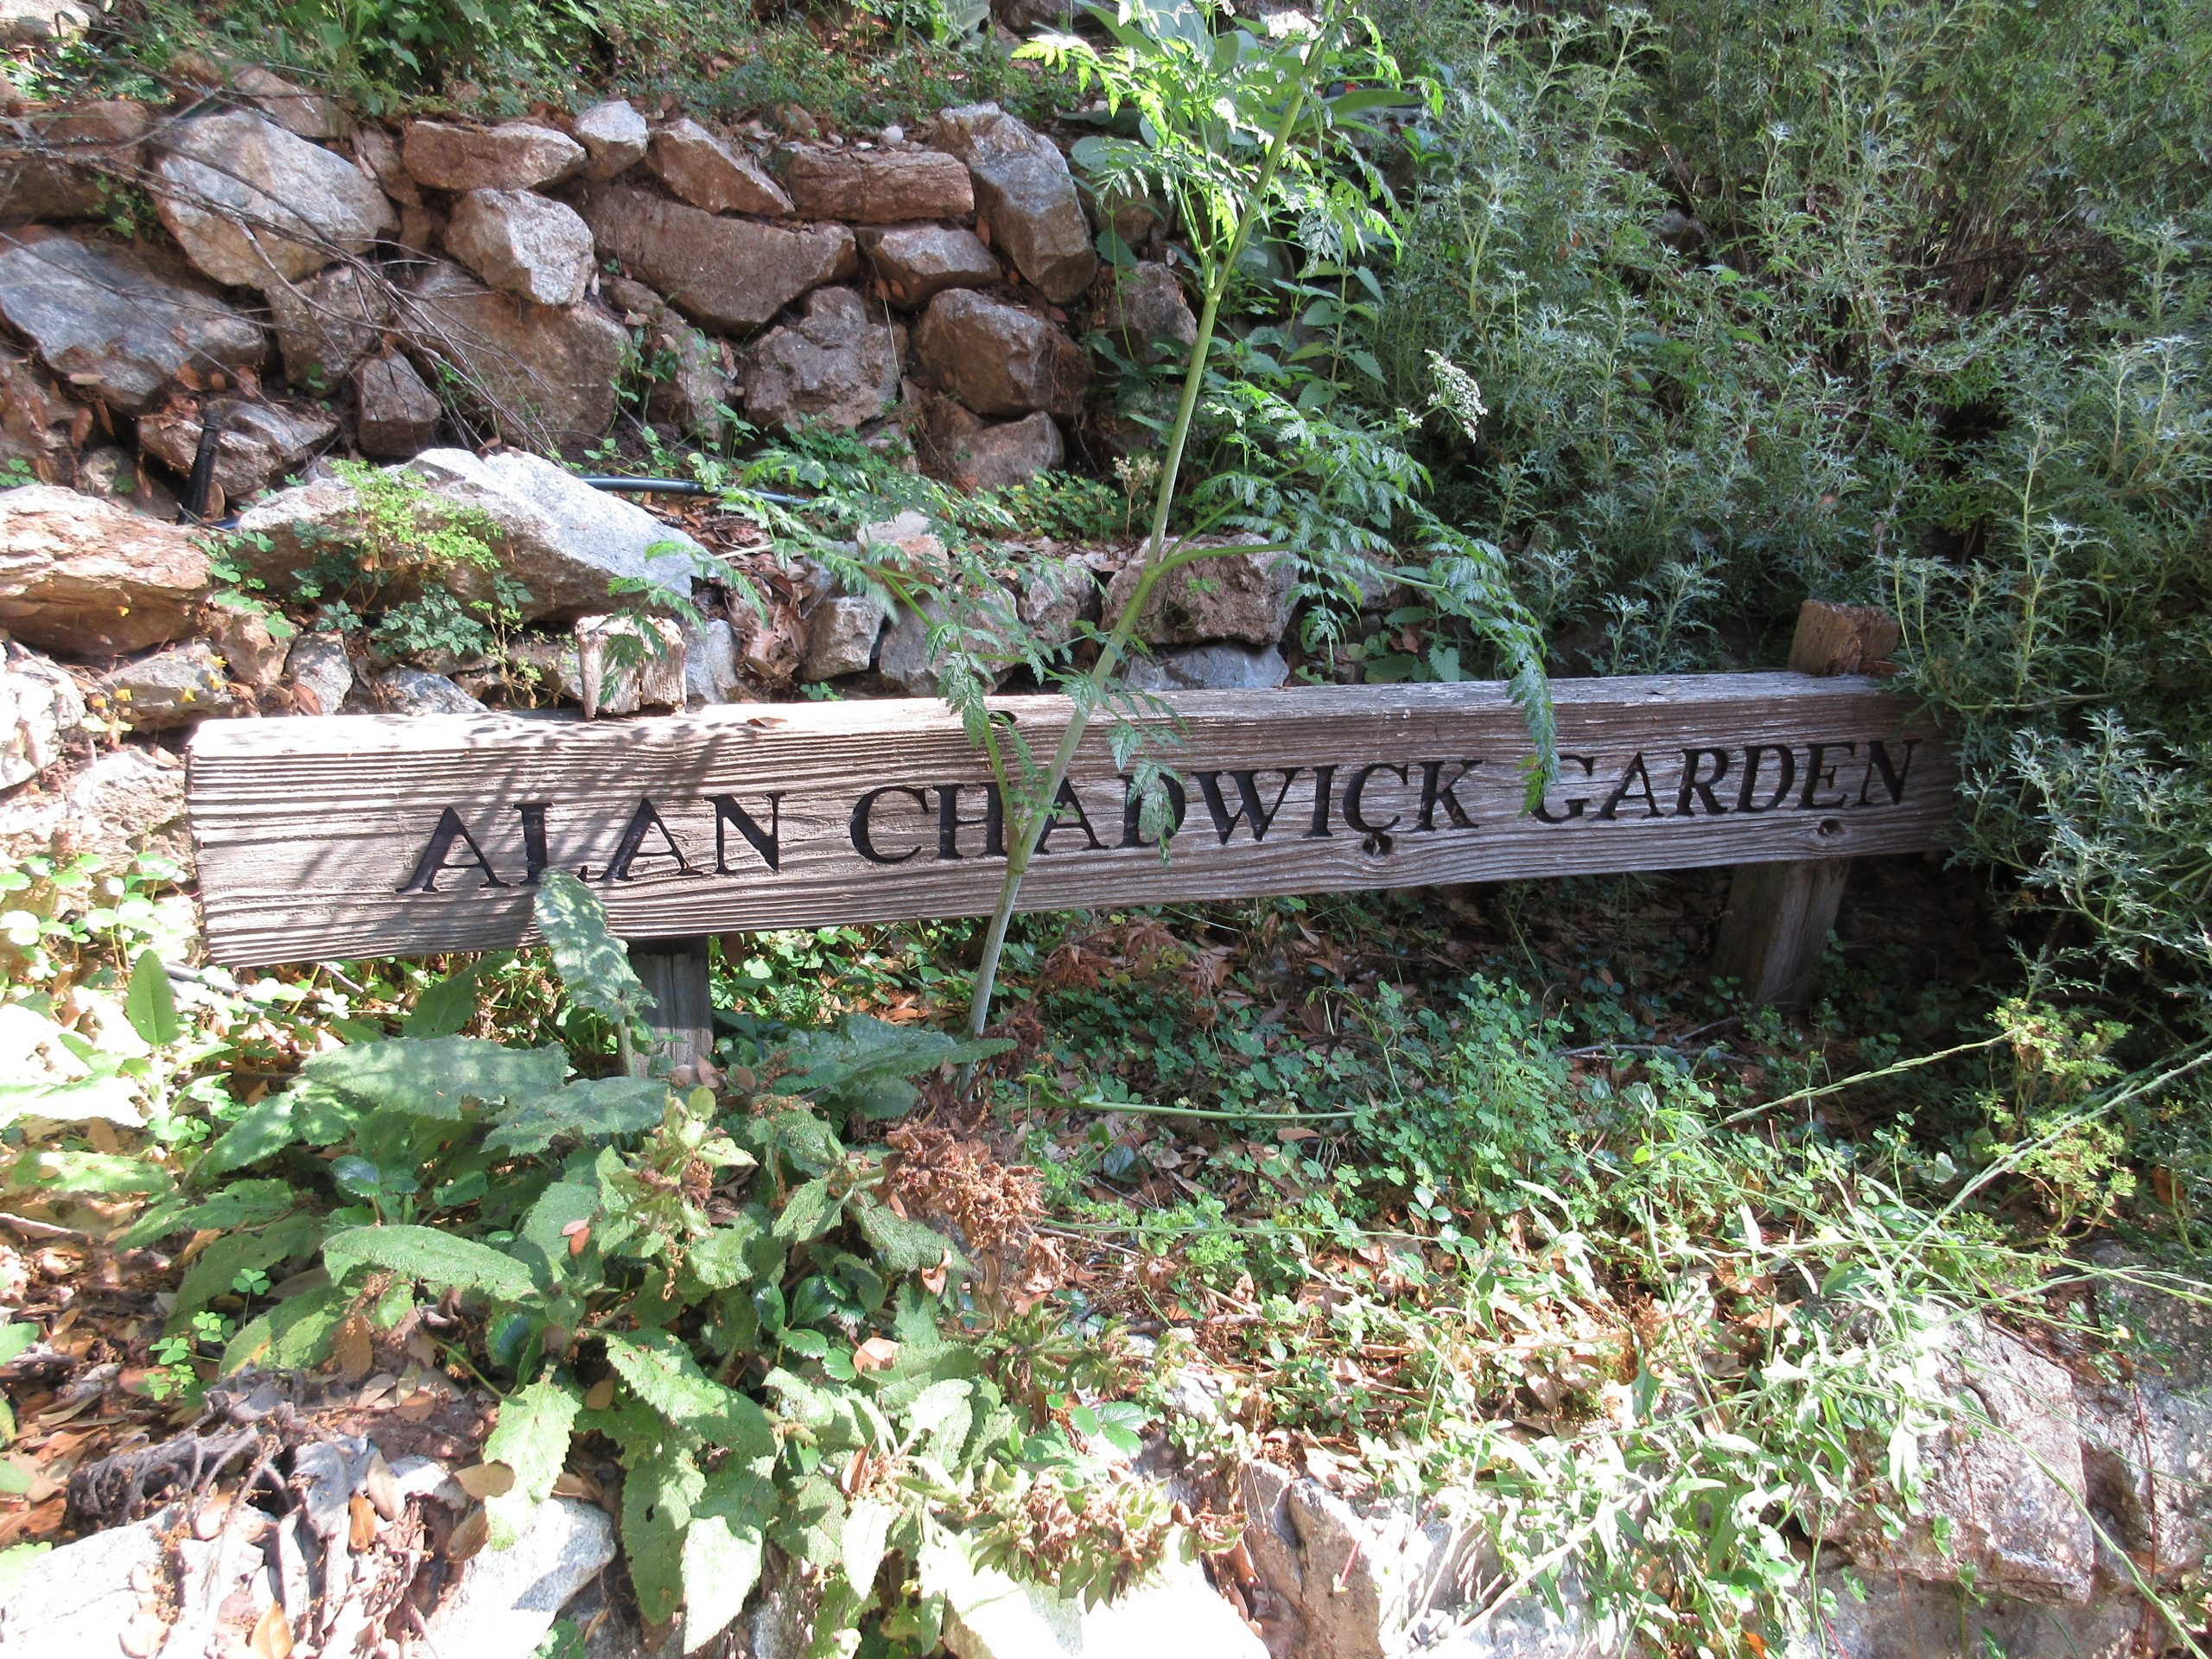 You are currently viewing Field Trip: Alan Chadwick Garden